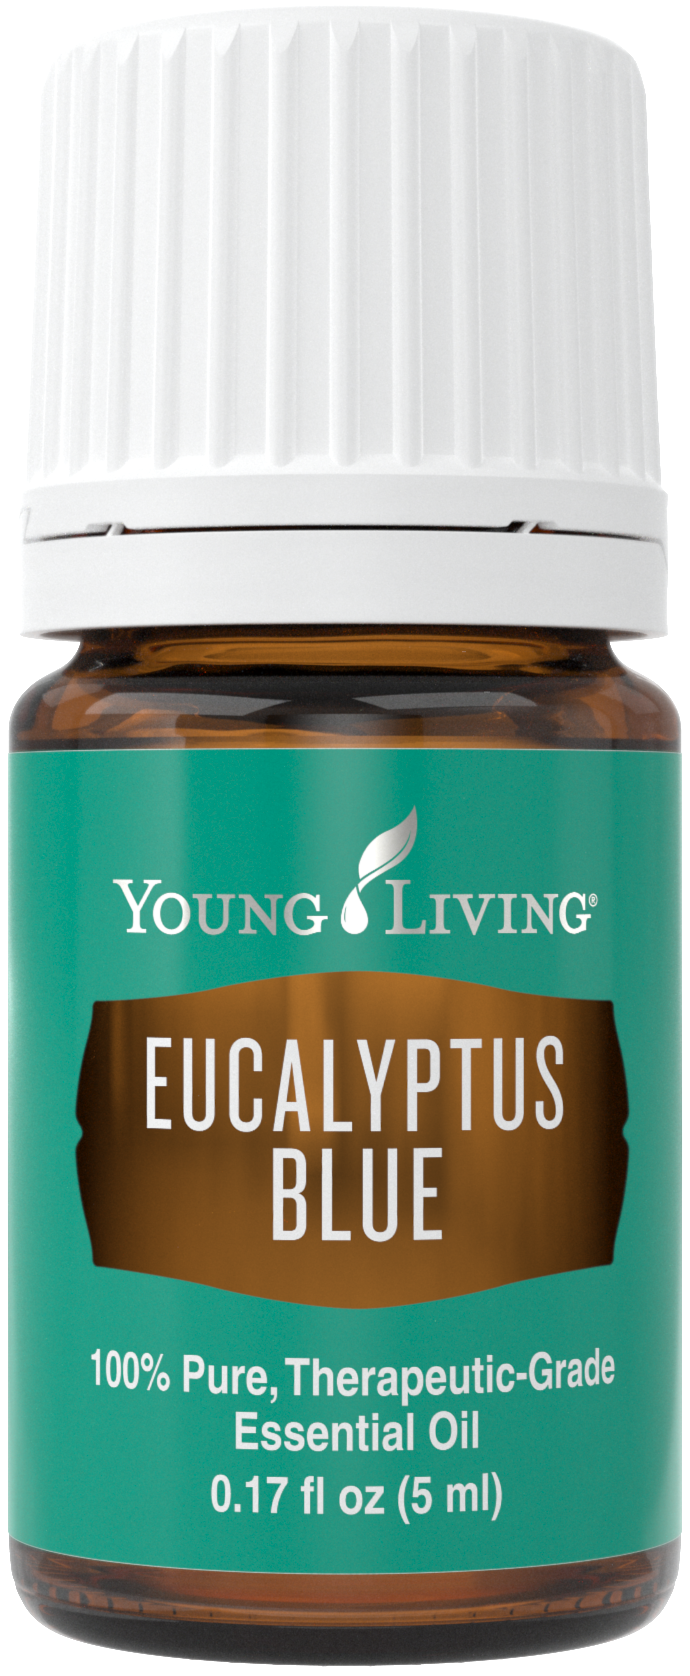 Eucalyptus Blue essential oil